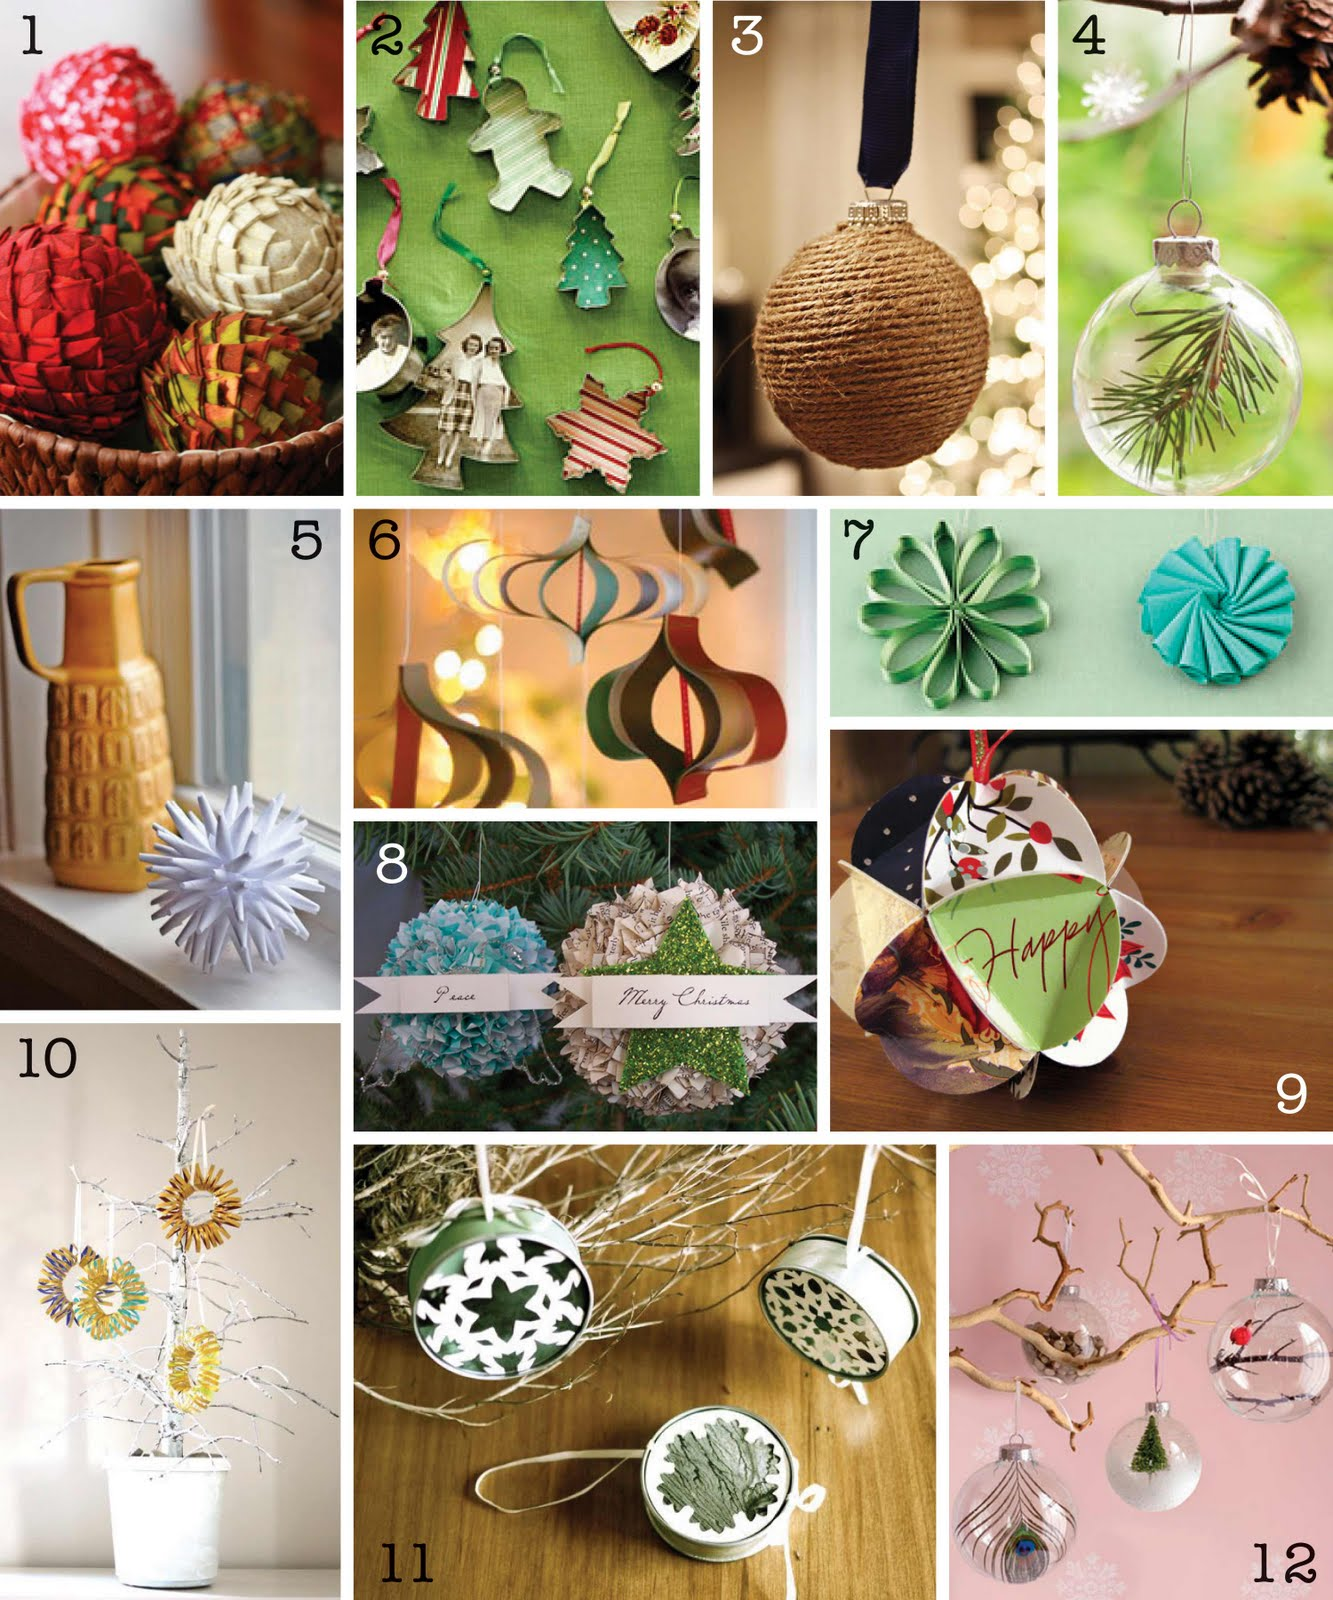 Christmas Diy Decorating Ideas: The Creative Place: DIY Christmas Ornament Round-Up